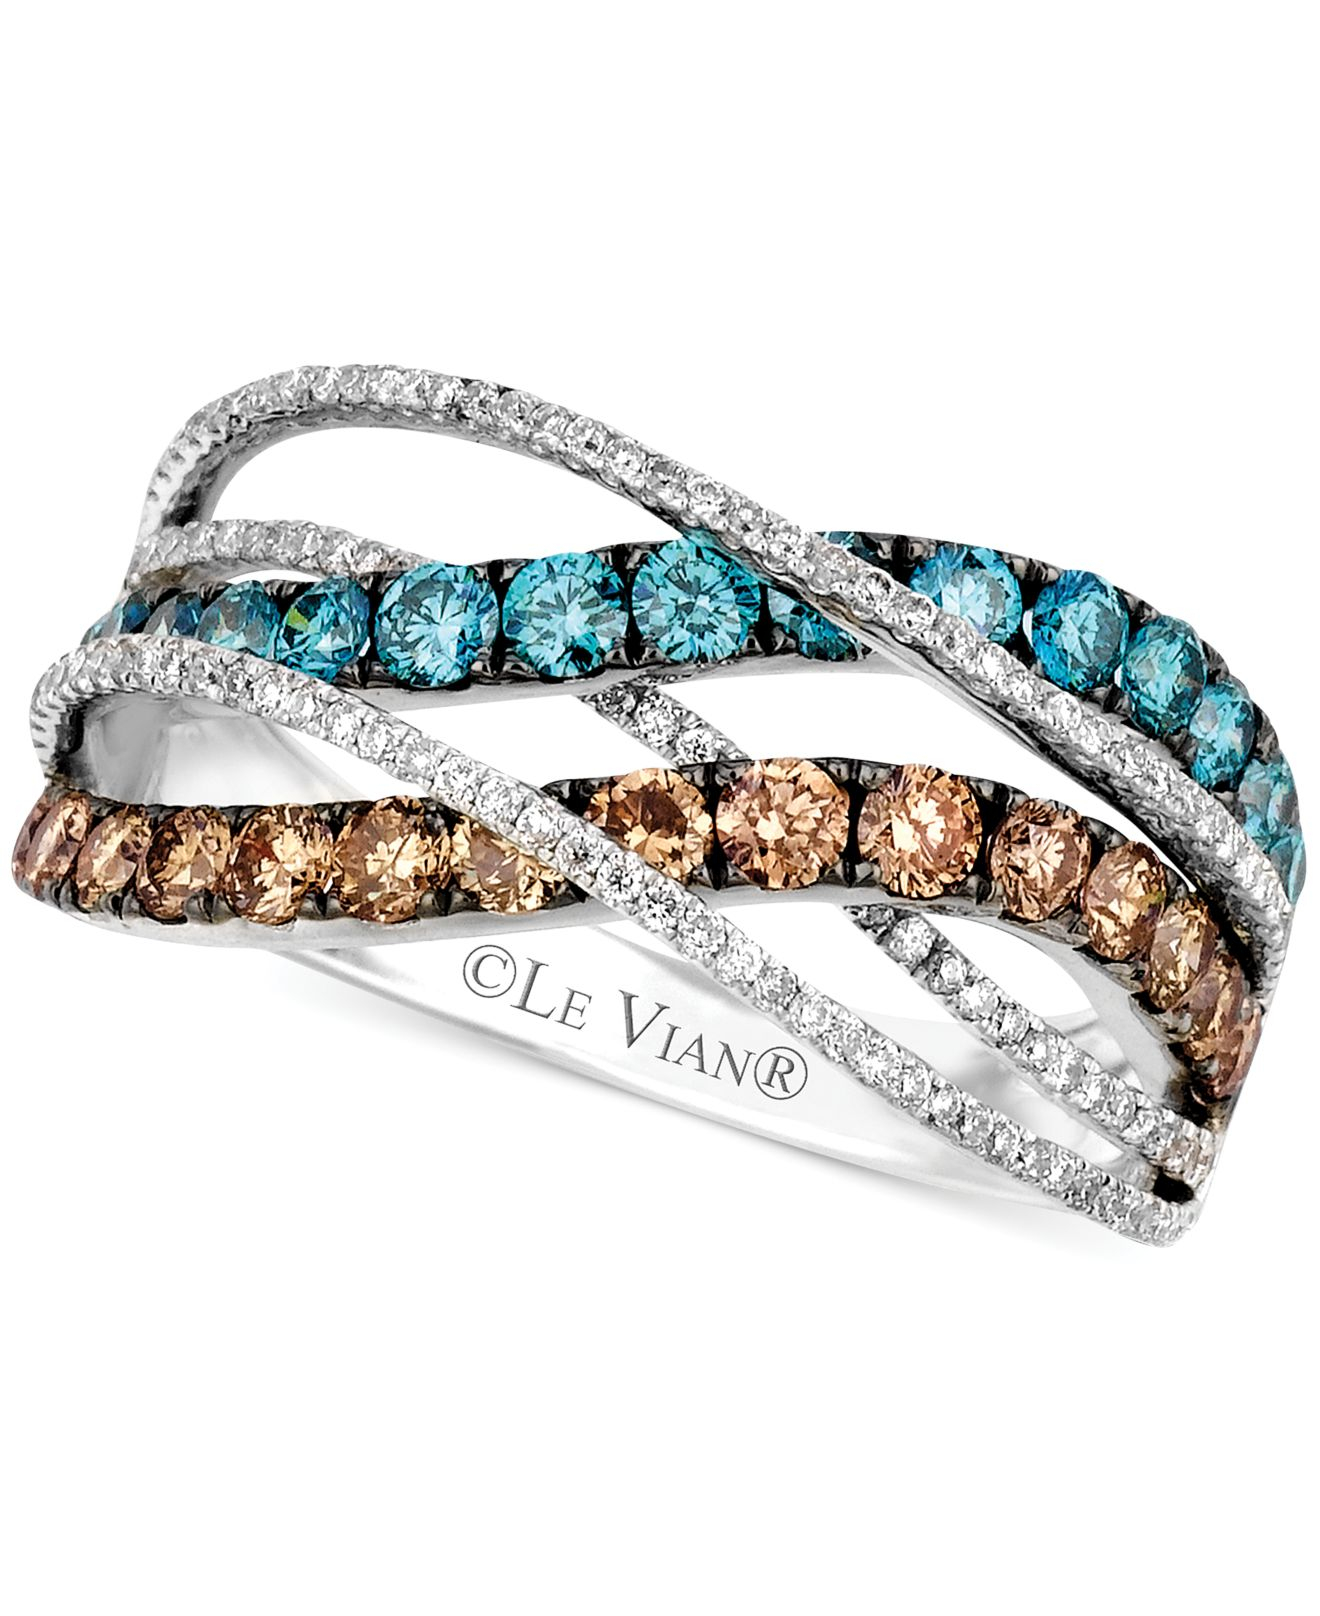 Le vian Chocolate And Ice Blue Diamond Swirl Ring In 14K White